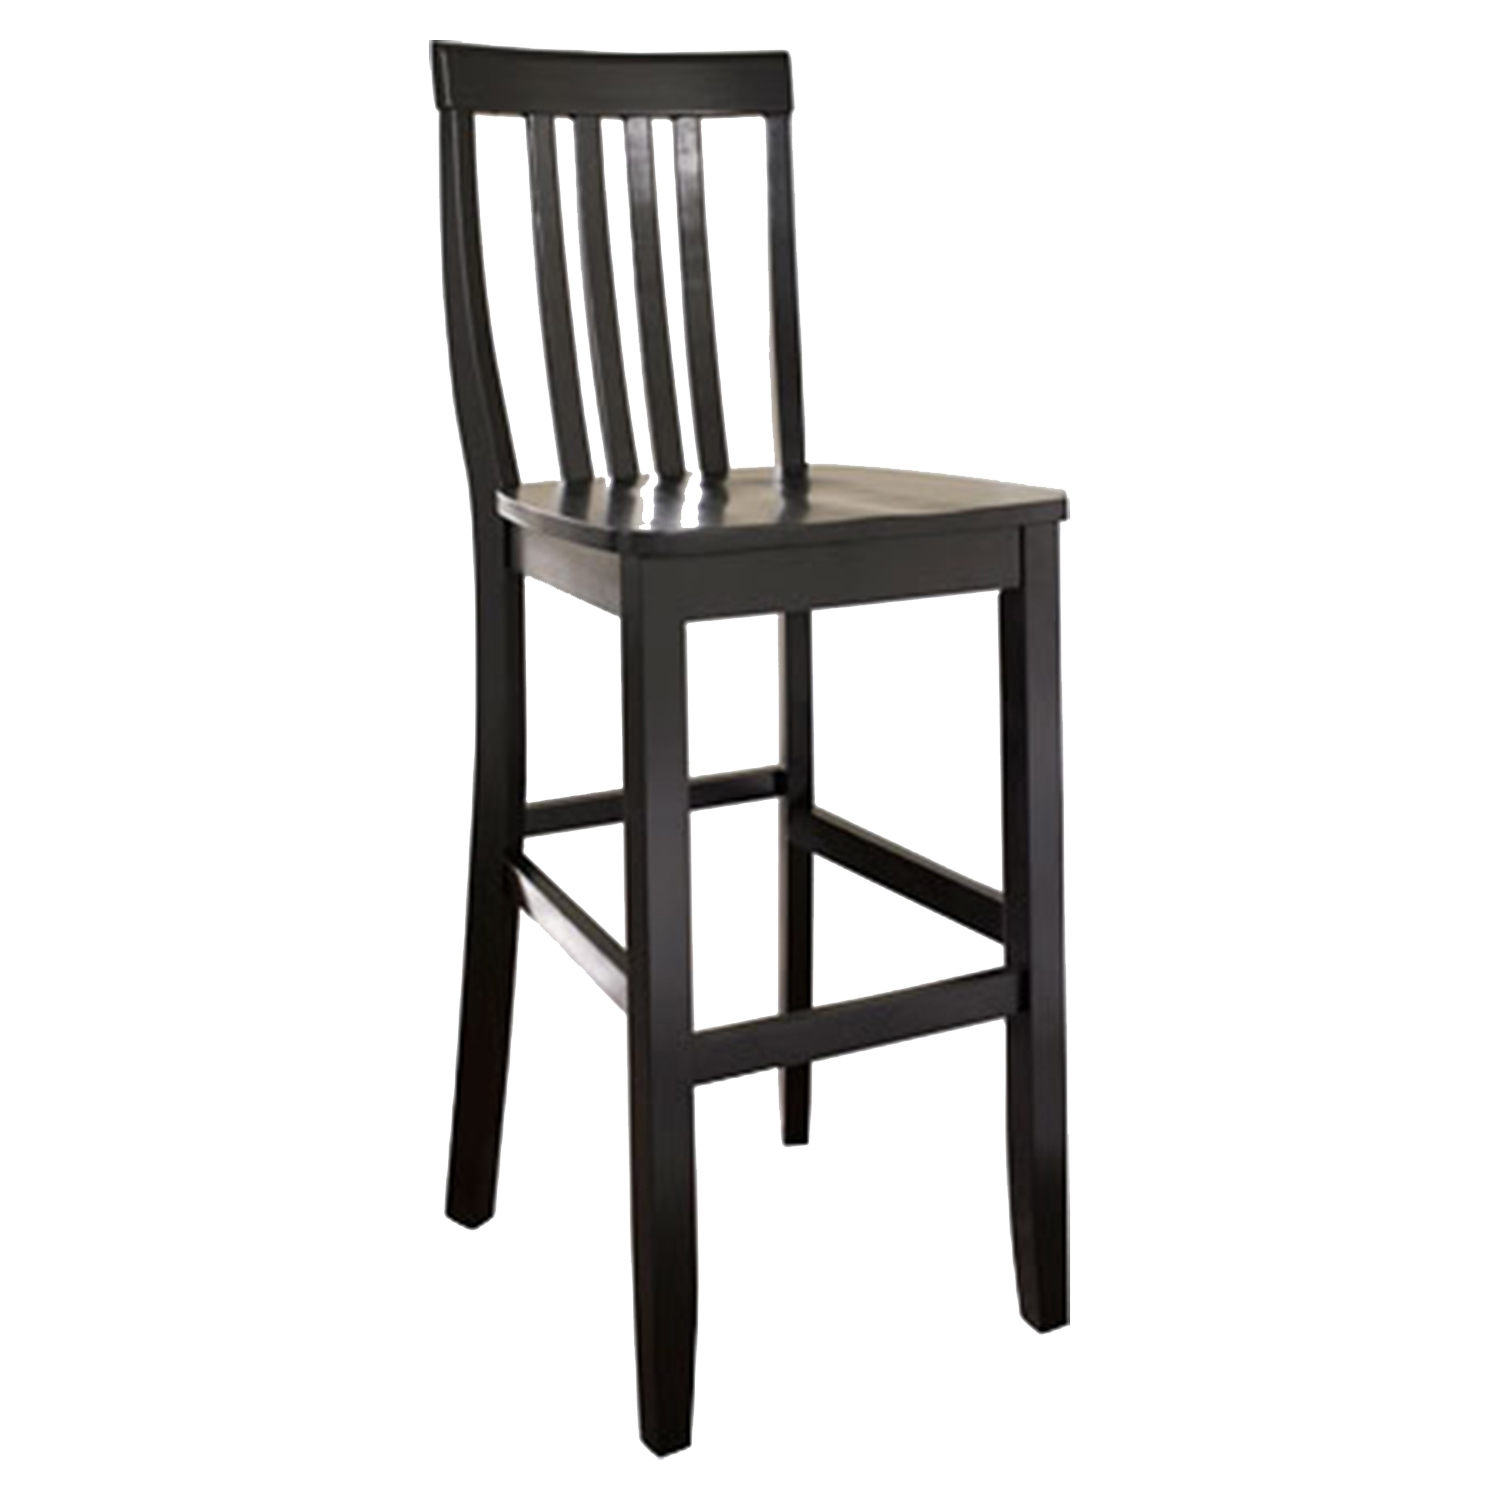 School House Bar Stool with 30 Inch Seat Height - Black (Set of 2) - CROS-CF500330-BK